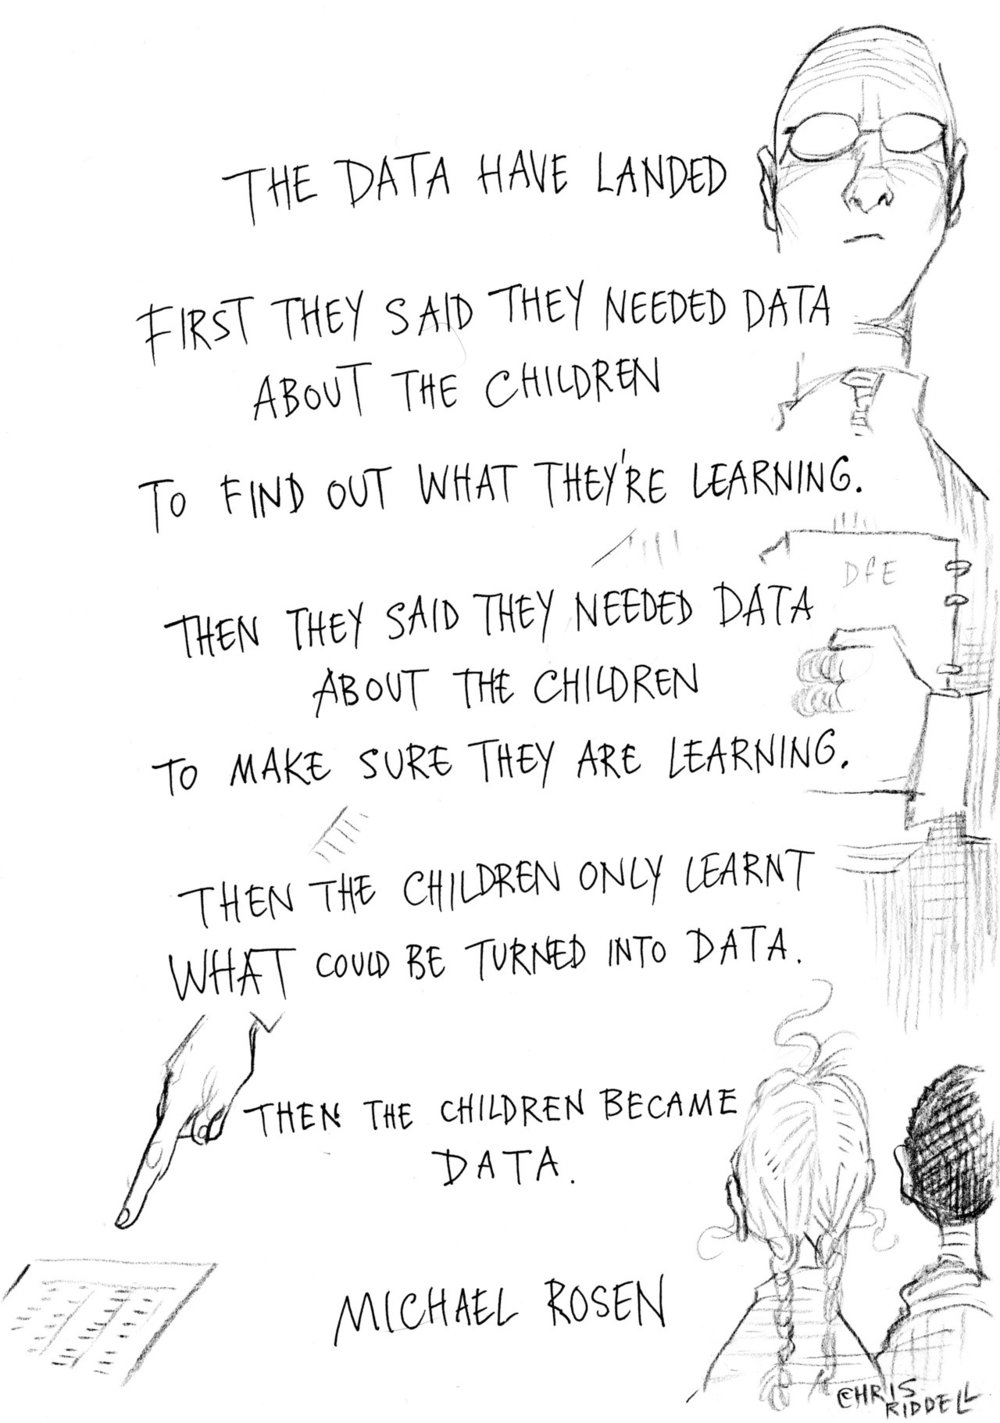 http://chrisriddellblog.tumblr.com/post/172440150489/michael-rosen